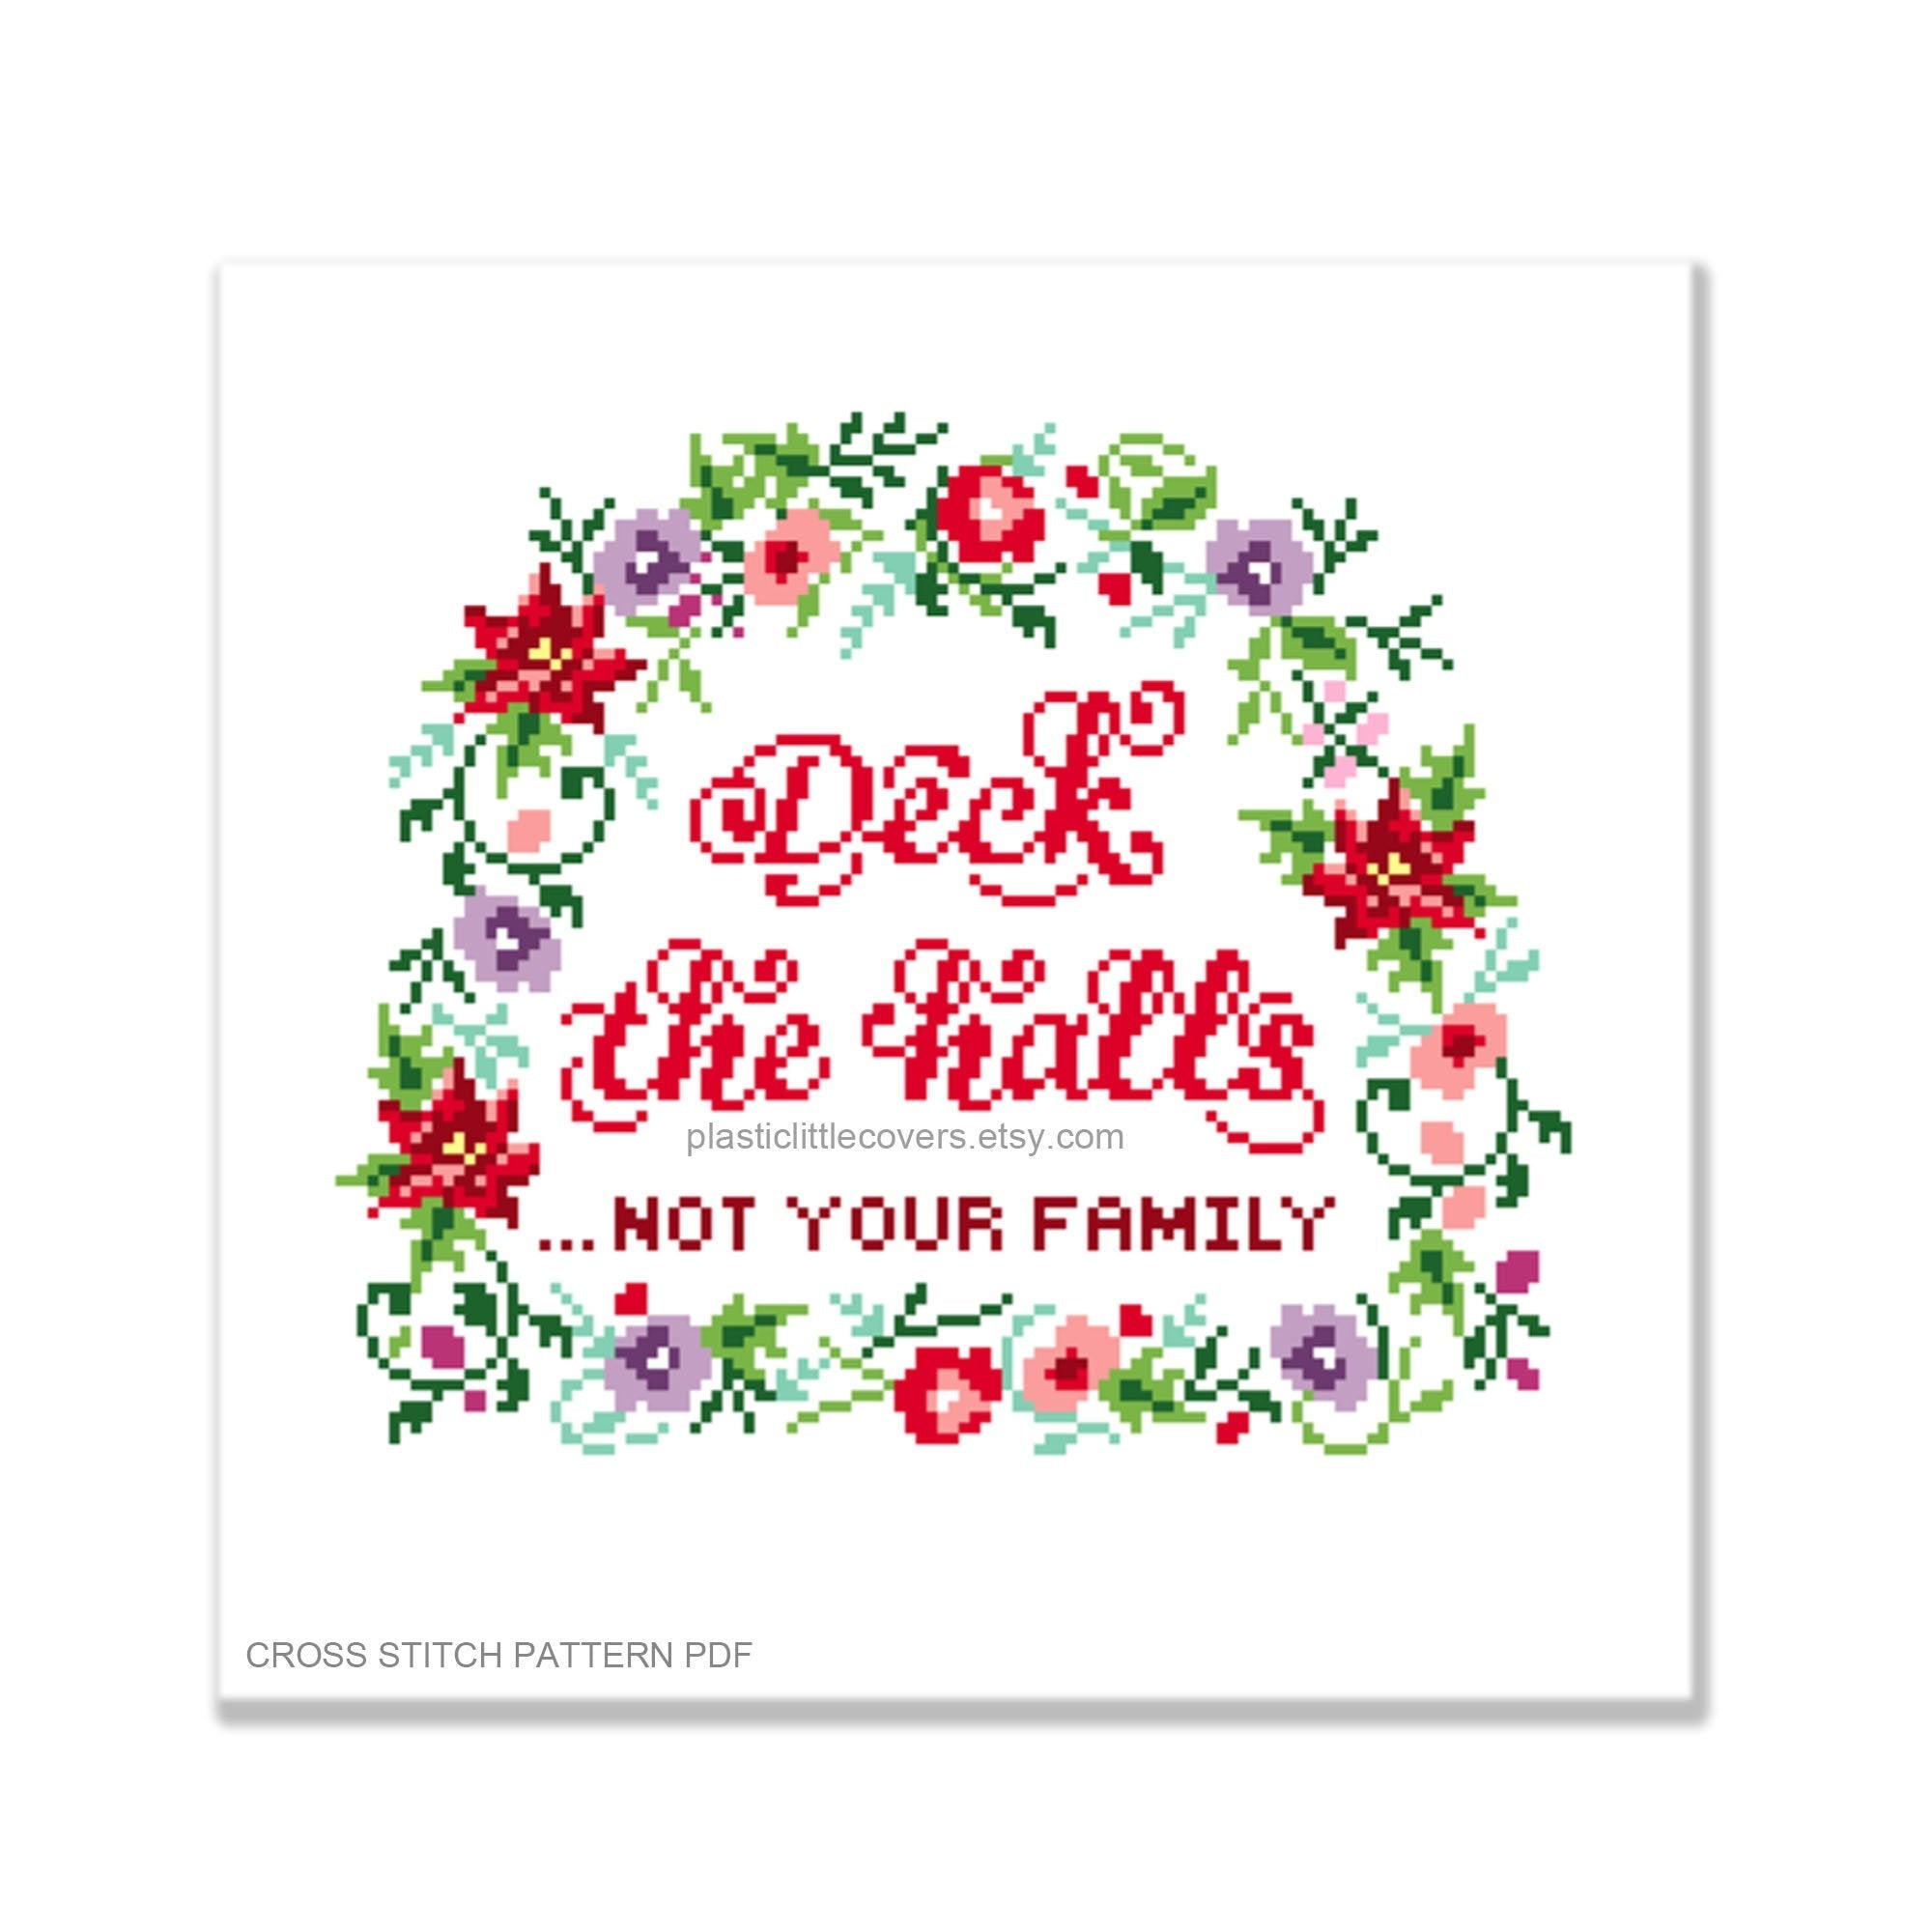 Deck the Halls... Not Your Family - Christmas Cross Stitch Pattern PDF.